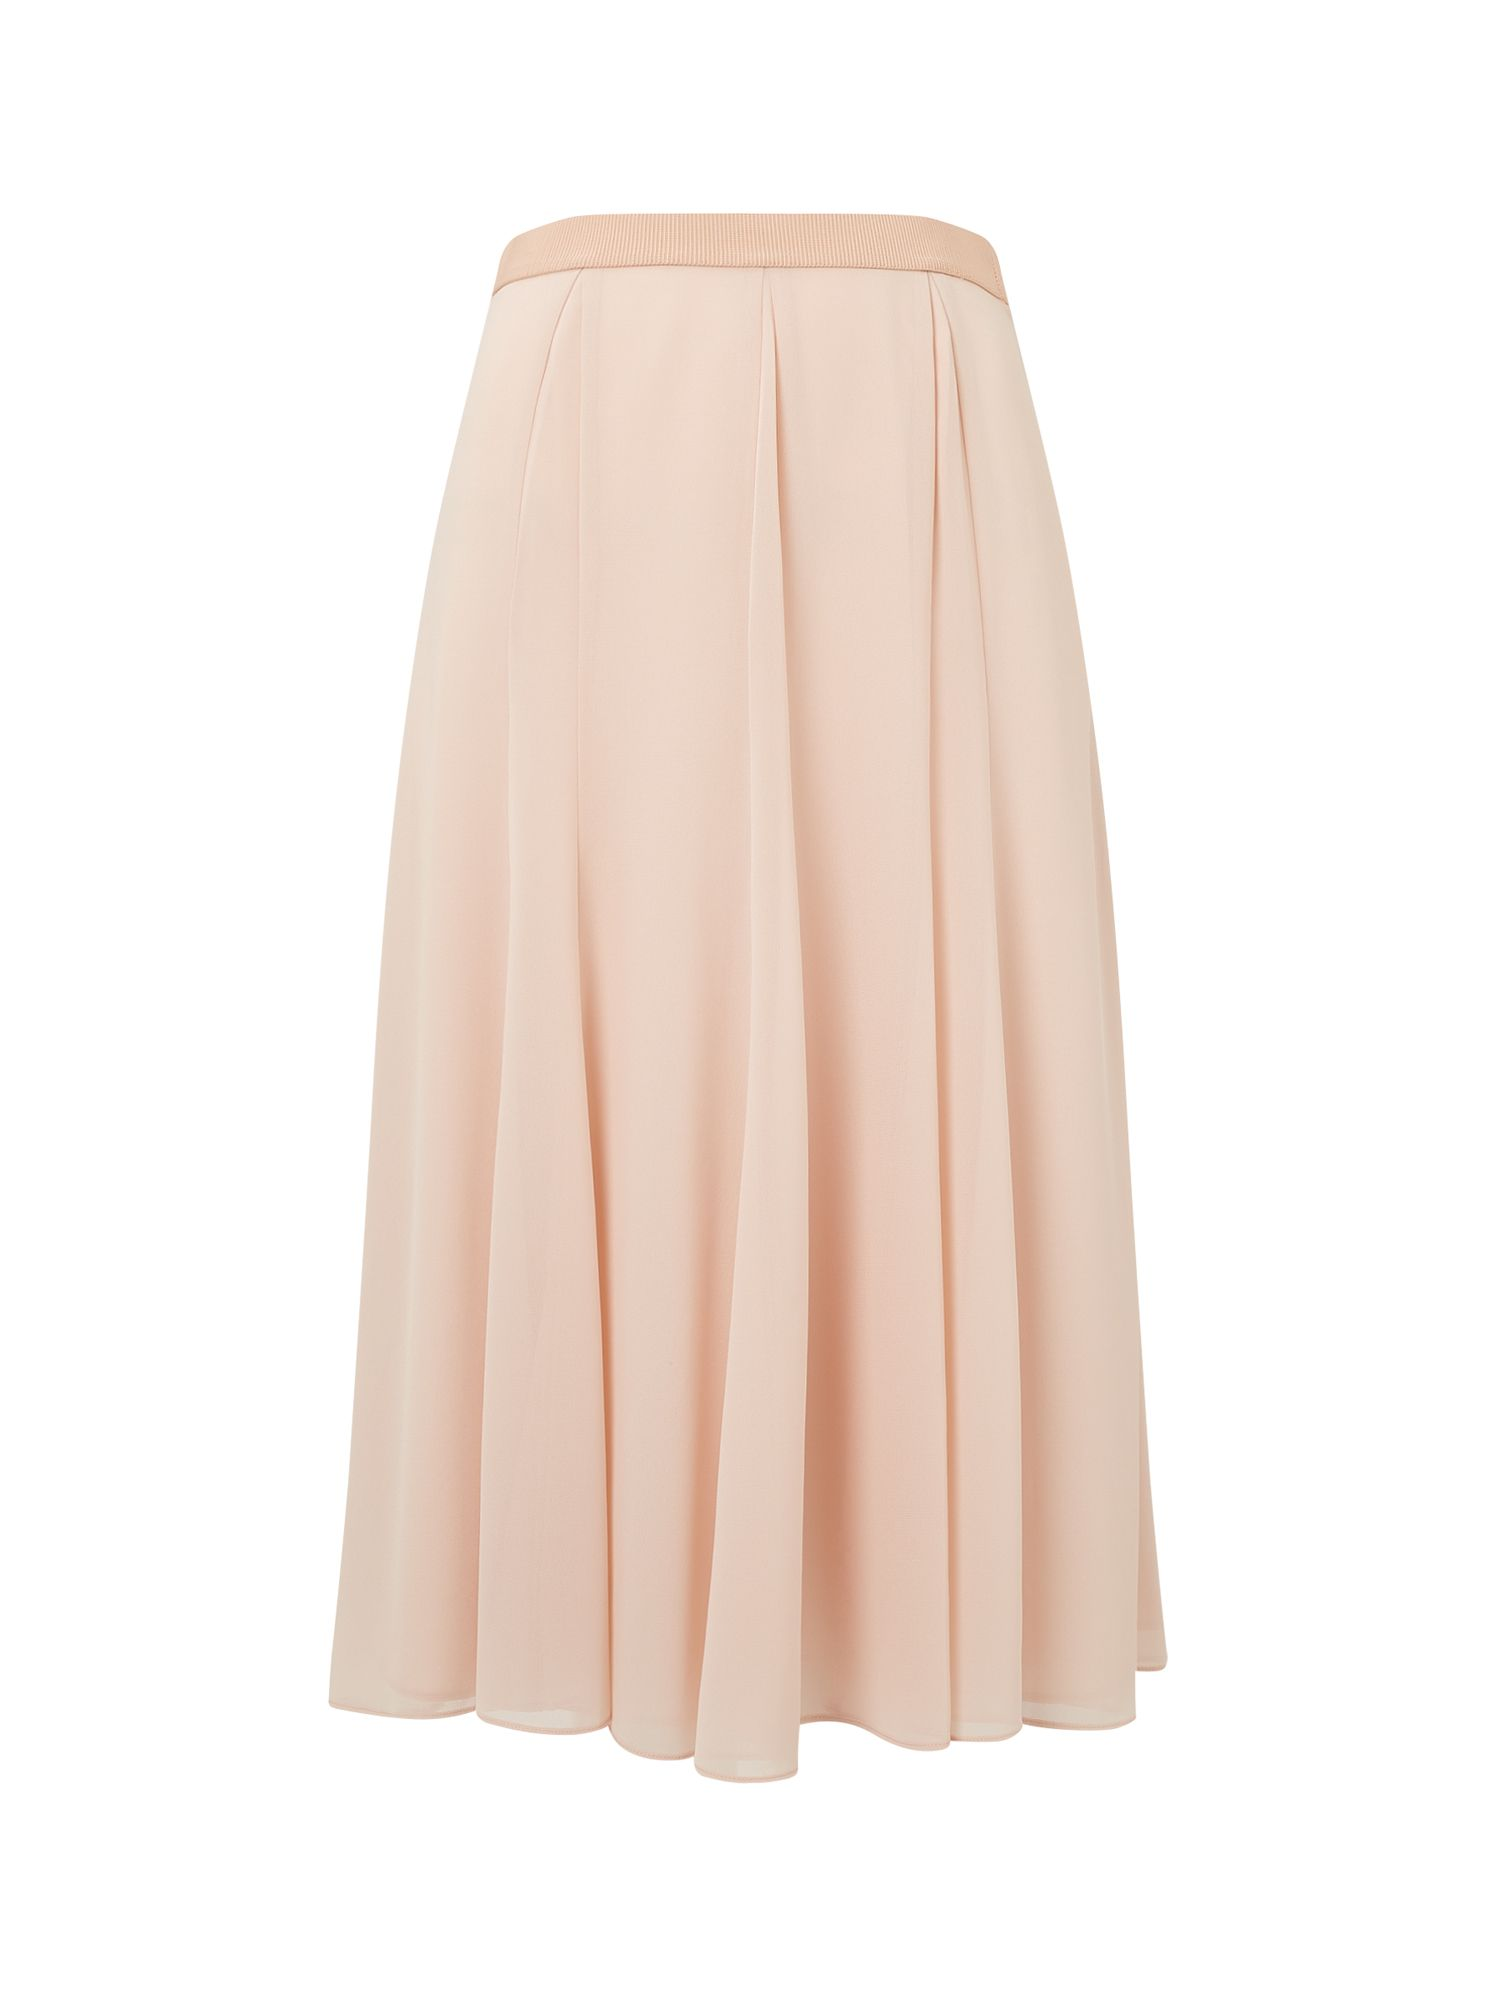 Jacques Vert GRACIE CHIFFON SKIRT, Neutral